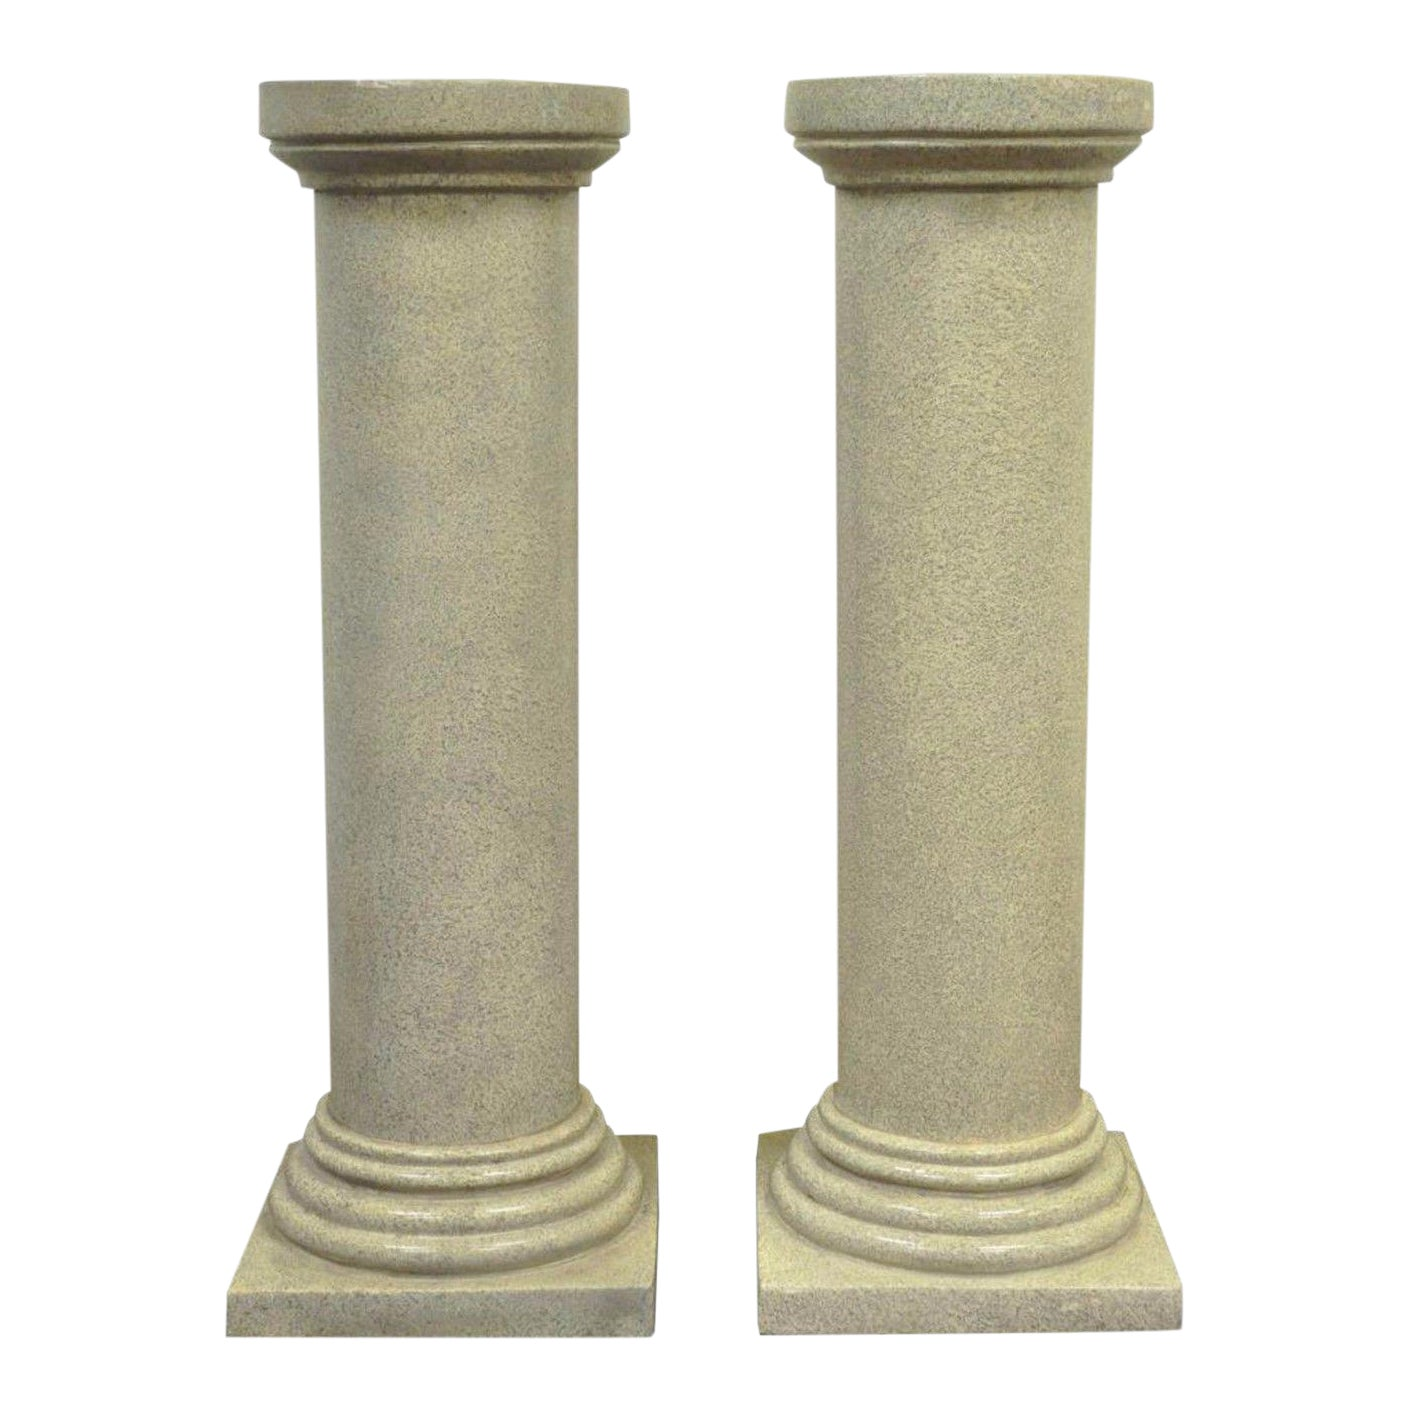 awesome com luxury sculpture inspirational canada display beautiful pedestals for pedestal of